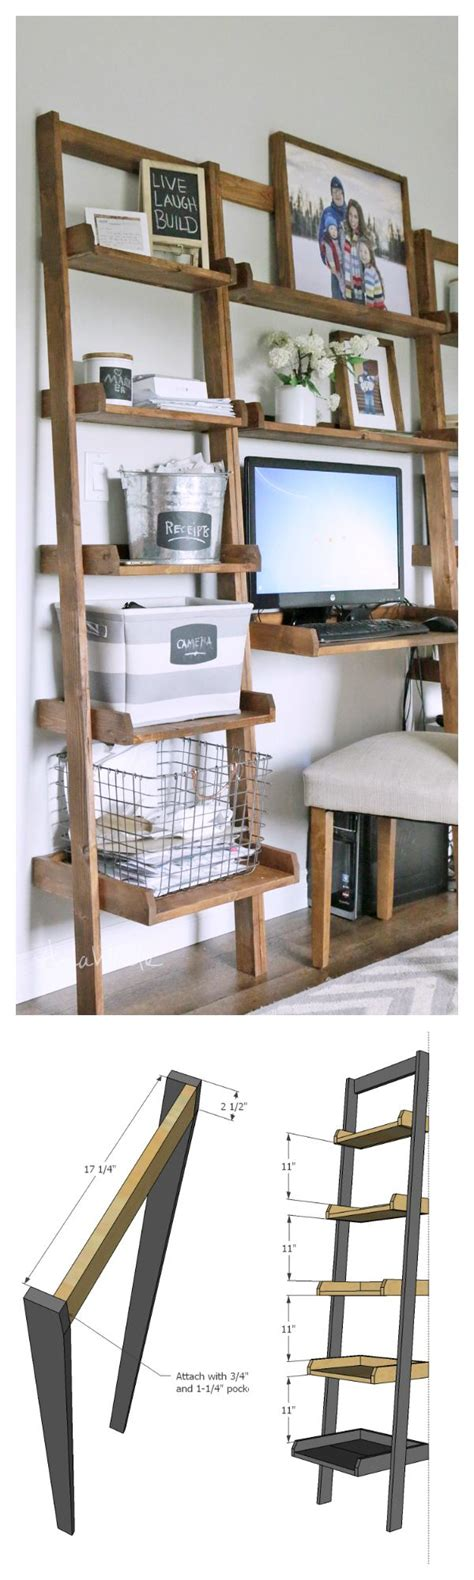 white leaning ladder wall bookshelf diy projects